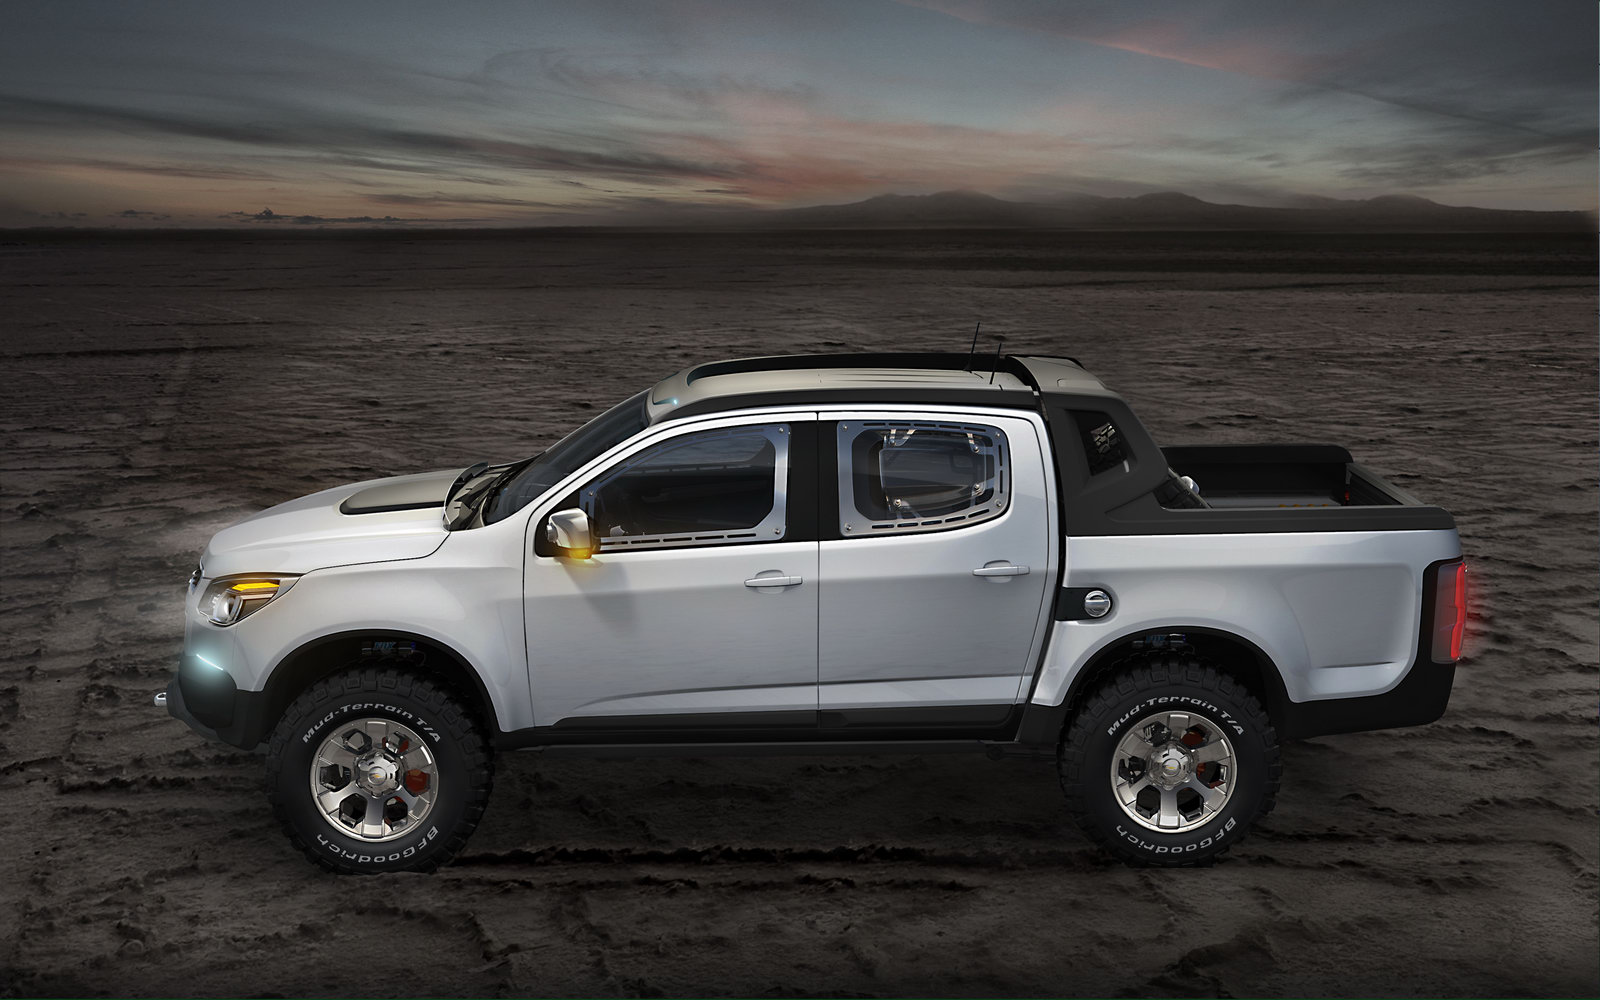 new chevrolet colorado rally concept is rough and ready autoevolution. Black Bedroom Furniture Sets. Home Design Ideas